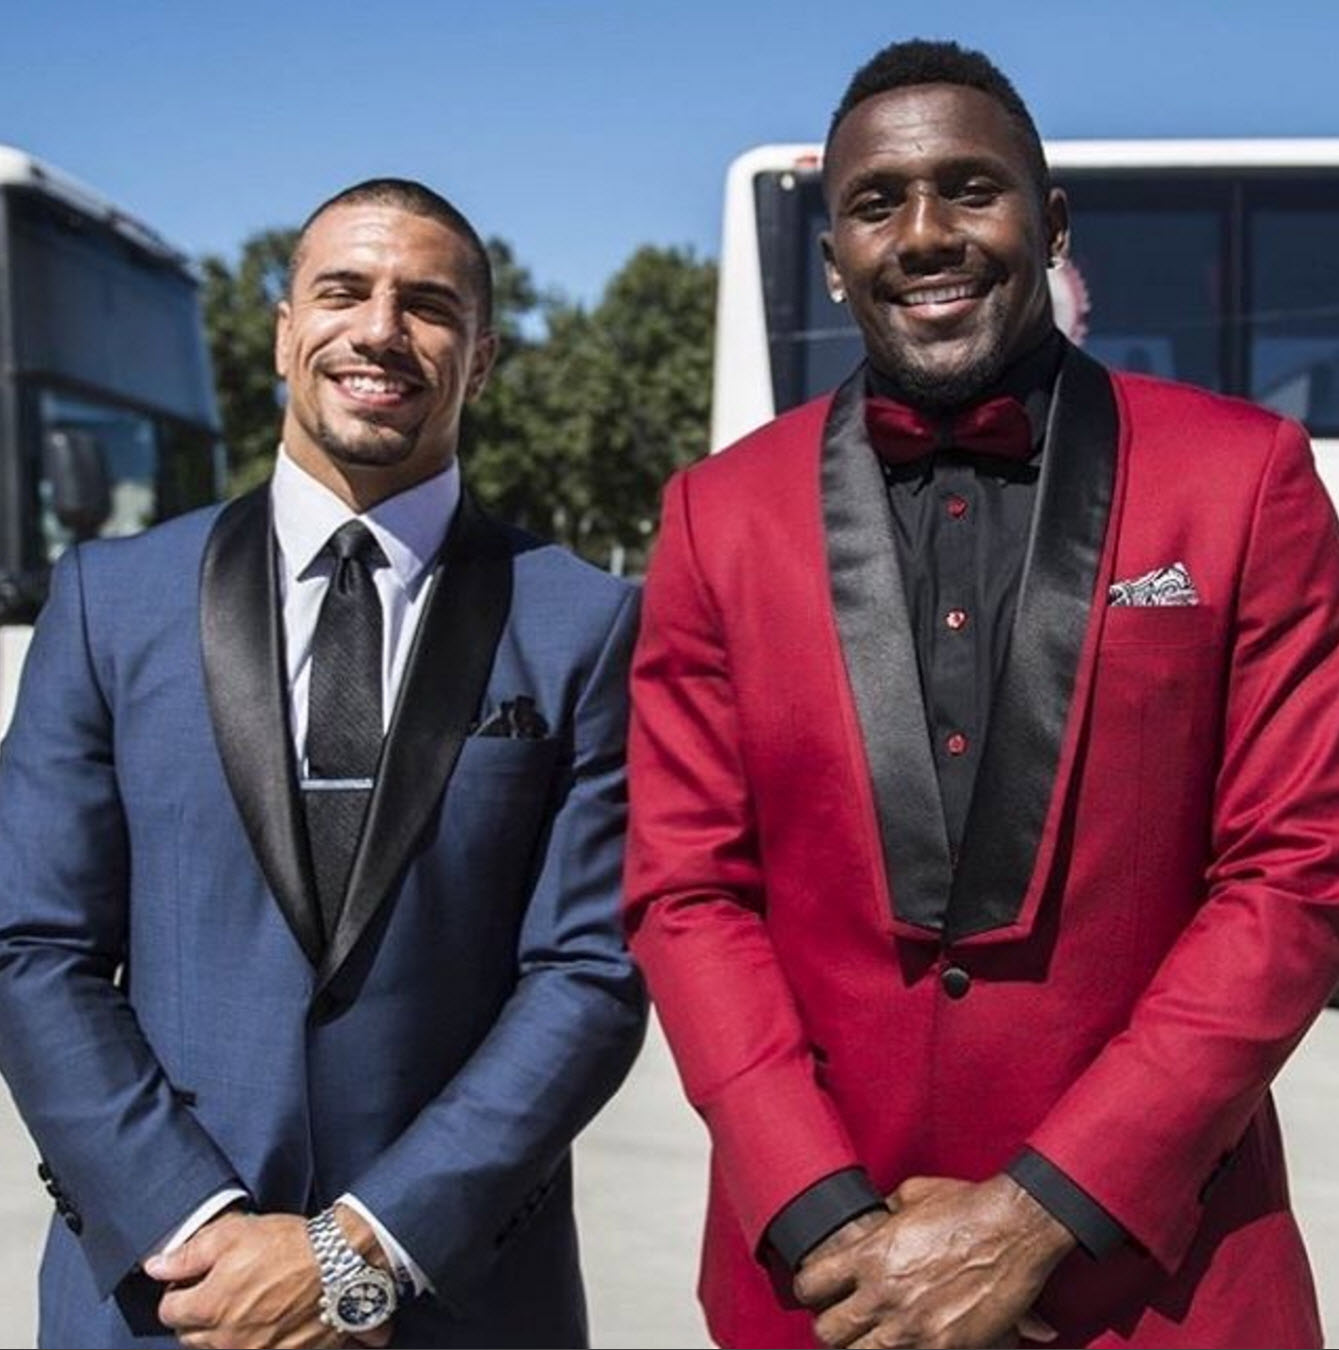 Business as usual. Kurt Coleman  @k4cole20  and Thomas Davis  @td58  hitting the road in  #ALBAbespoke  suits designed by  #jillevans .